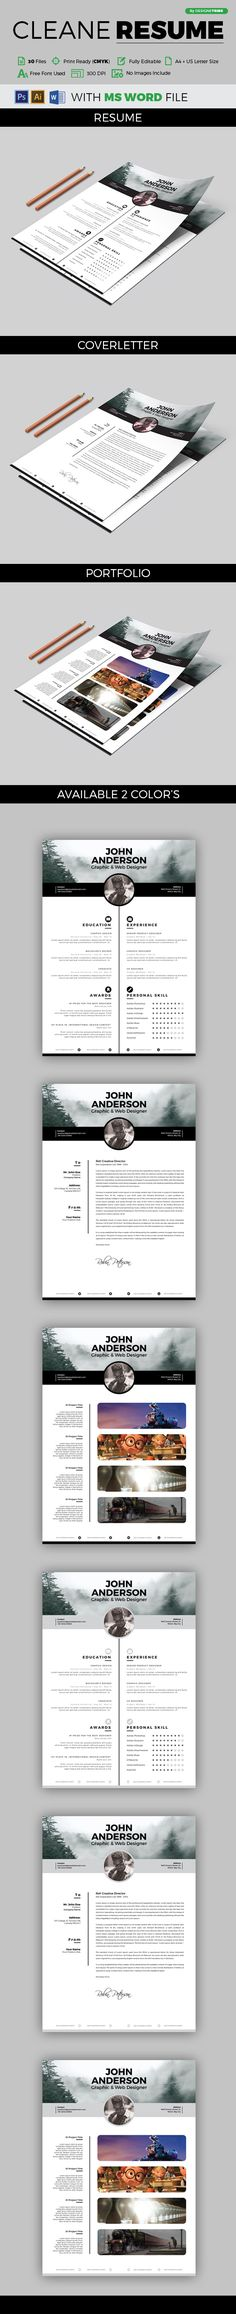 buy resume by arsalanhanif on graphicriver hi there this is a perfect resumecv template for you this template is super easy to edit